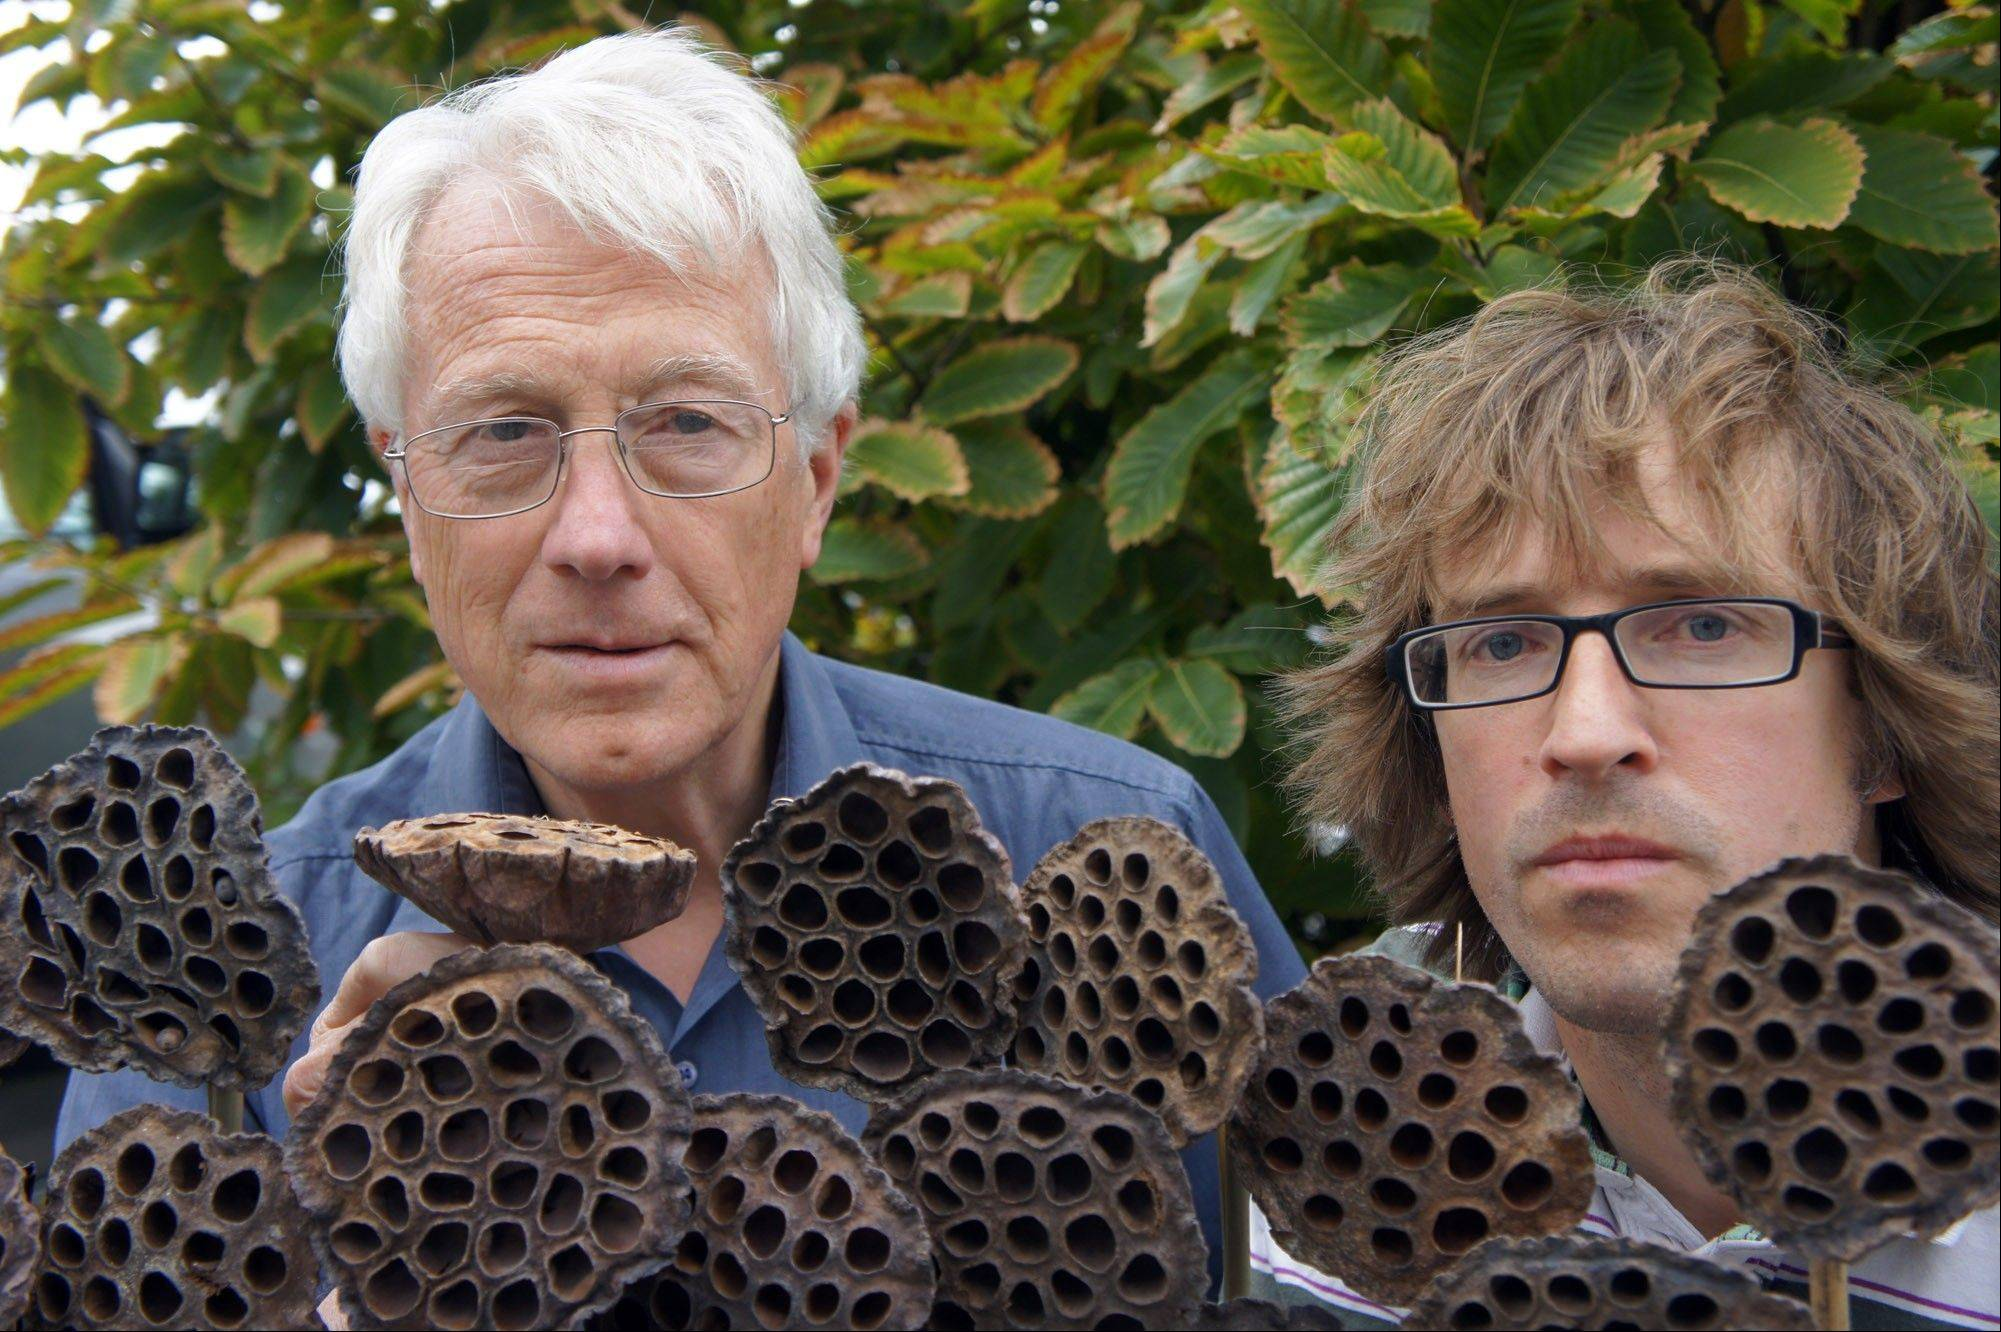 Arnold Wilkins, left, and Geoff Cole hope to show than an aversion to objects such as lotus seedpods can be seen as a phobia with an evolutionary basis.